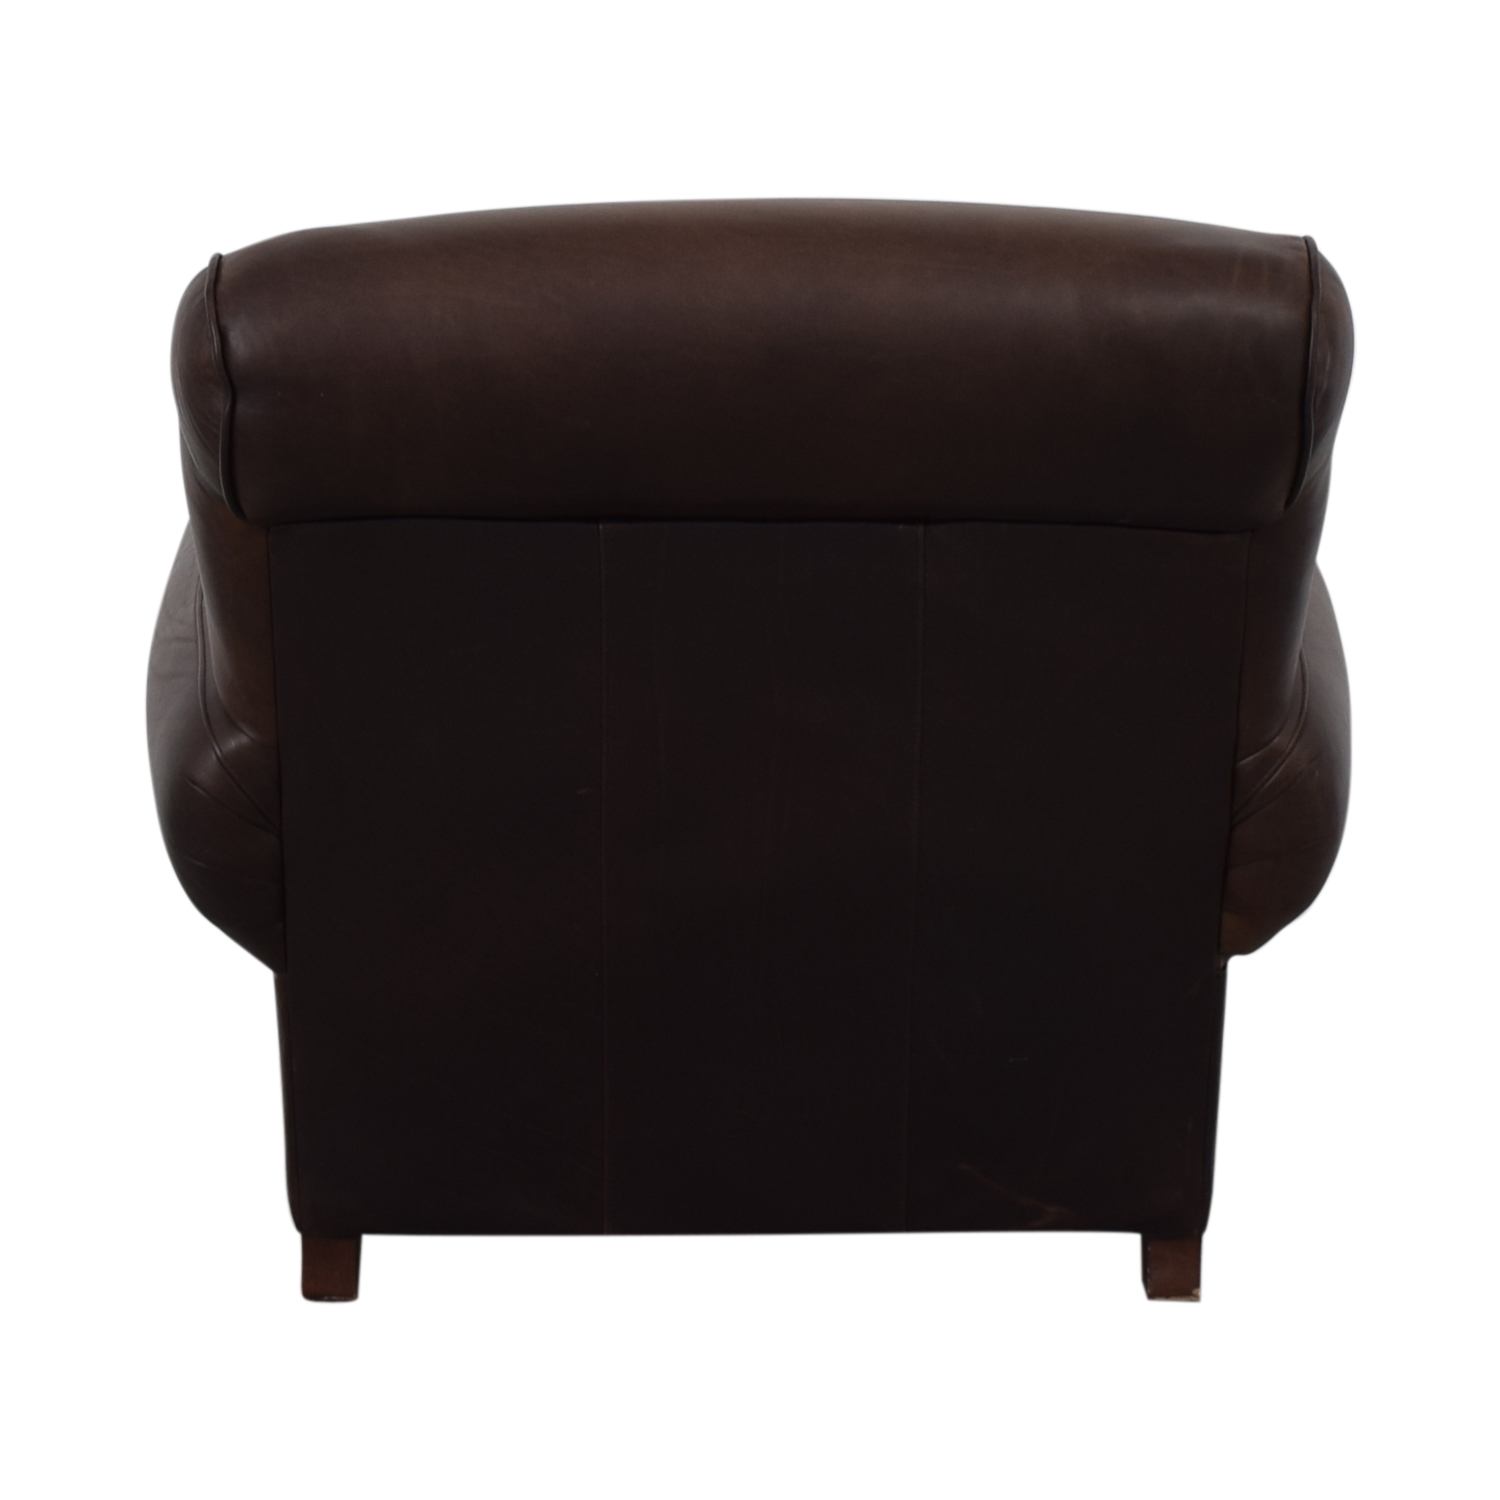 Pottery Barn Brown Club Chair sale